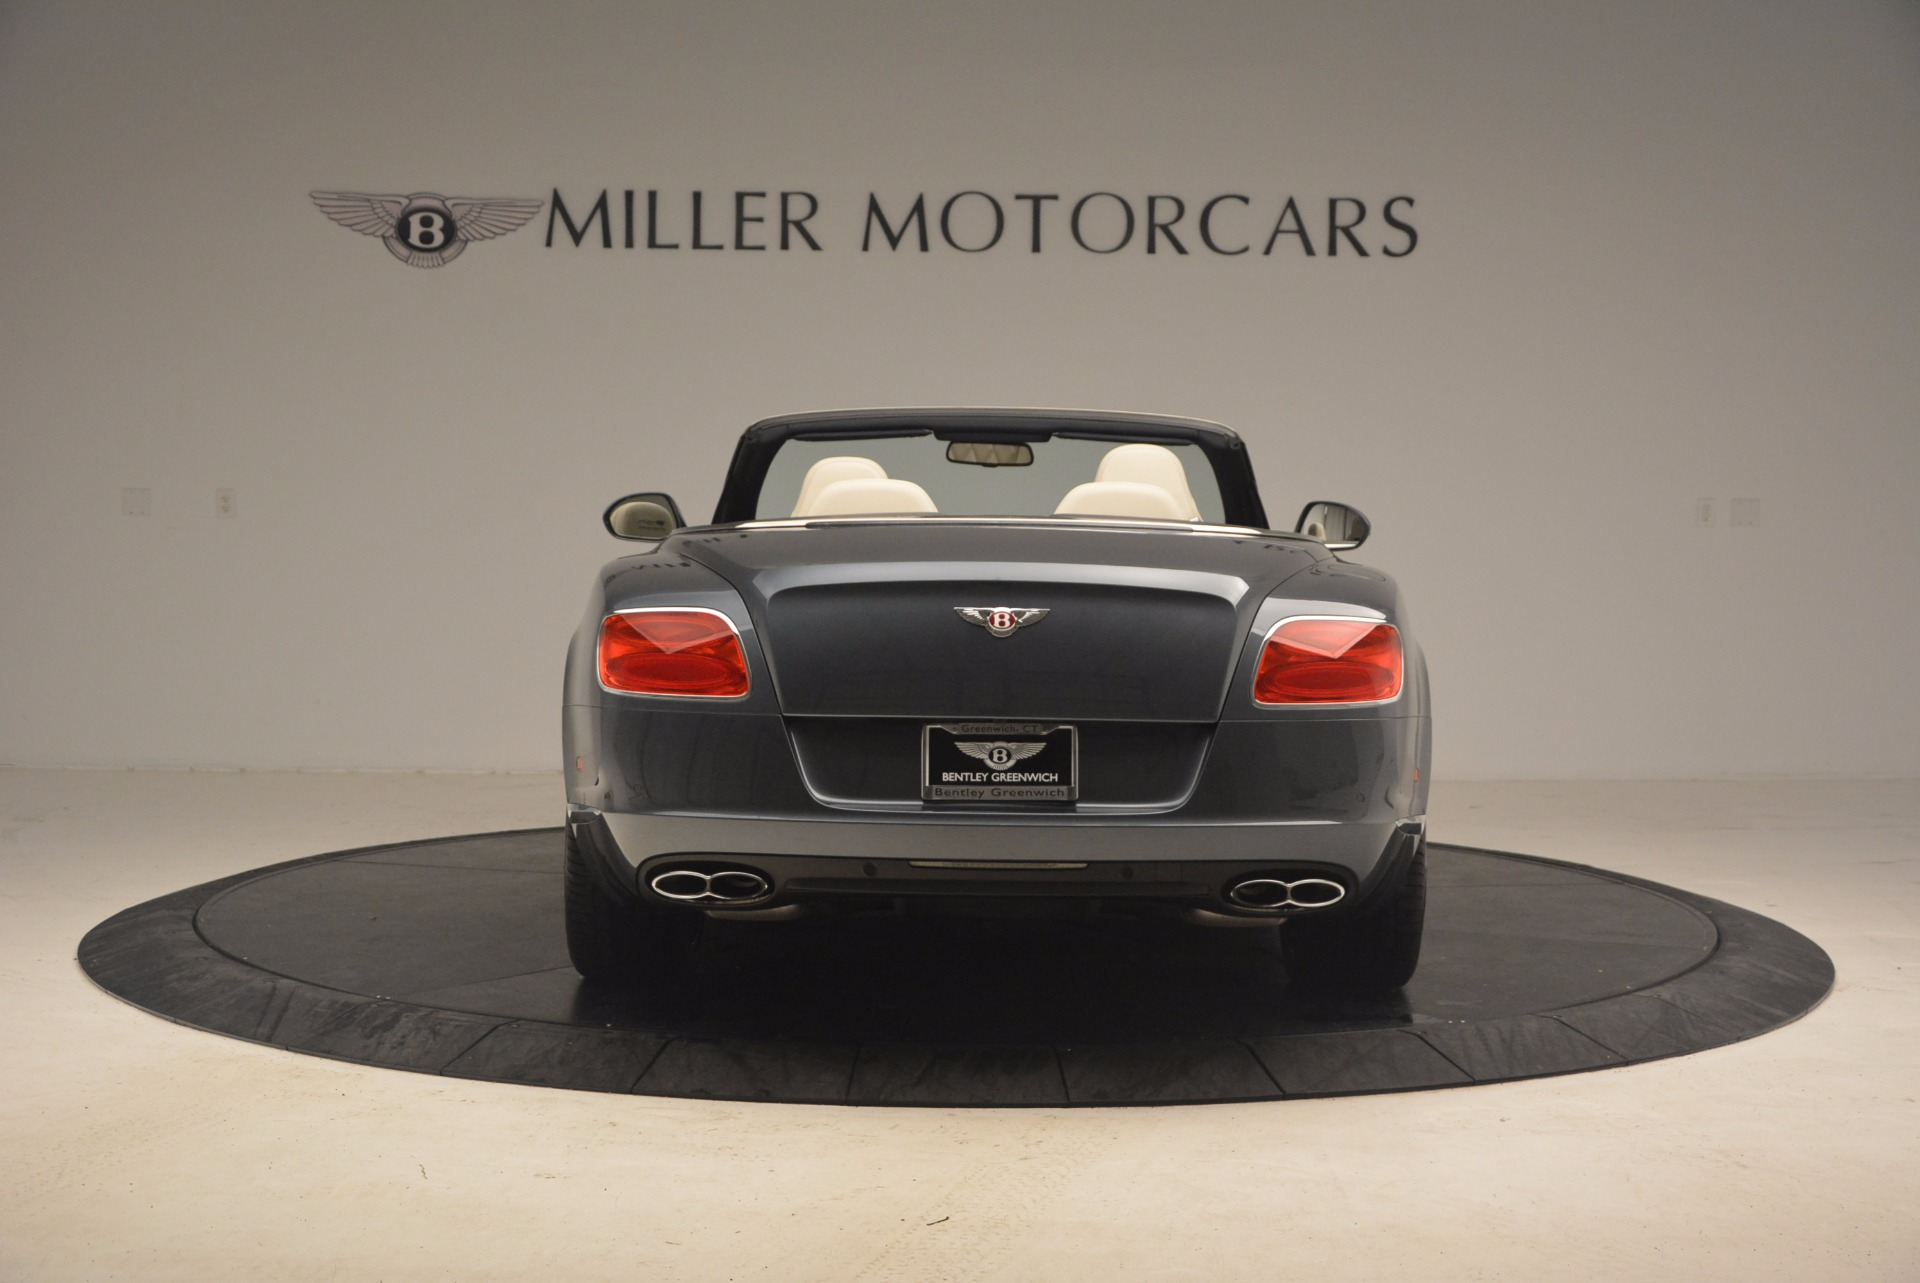 Used 2013 Bentley Continental GT V8 Le Mans Edition, 1 of 48 For Sale In Greenwich, CT 1288_p6